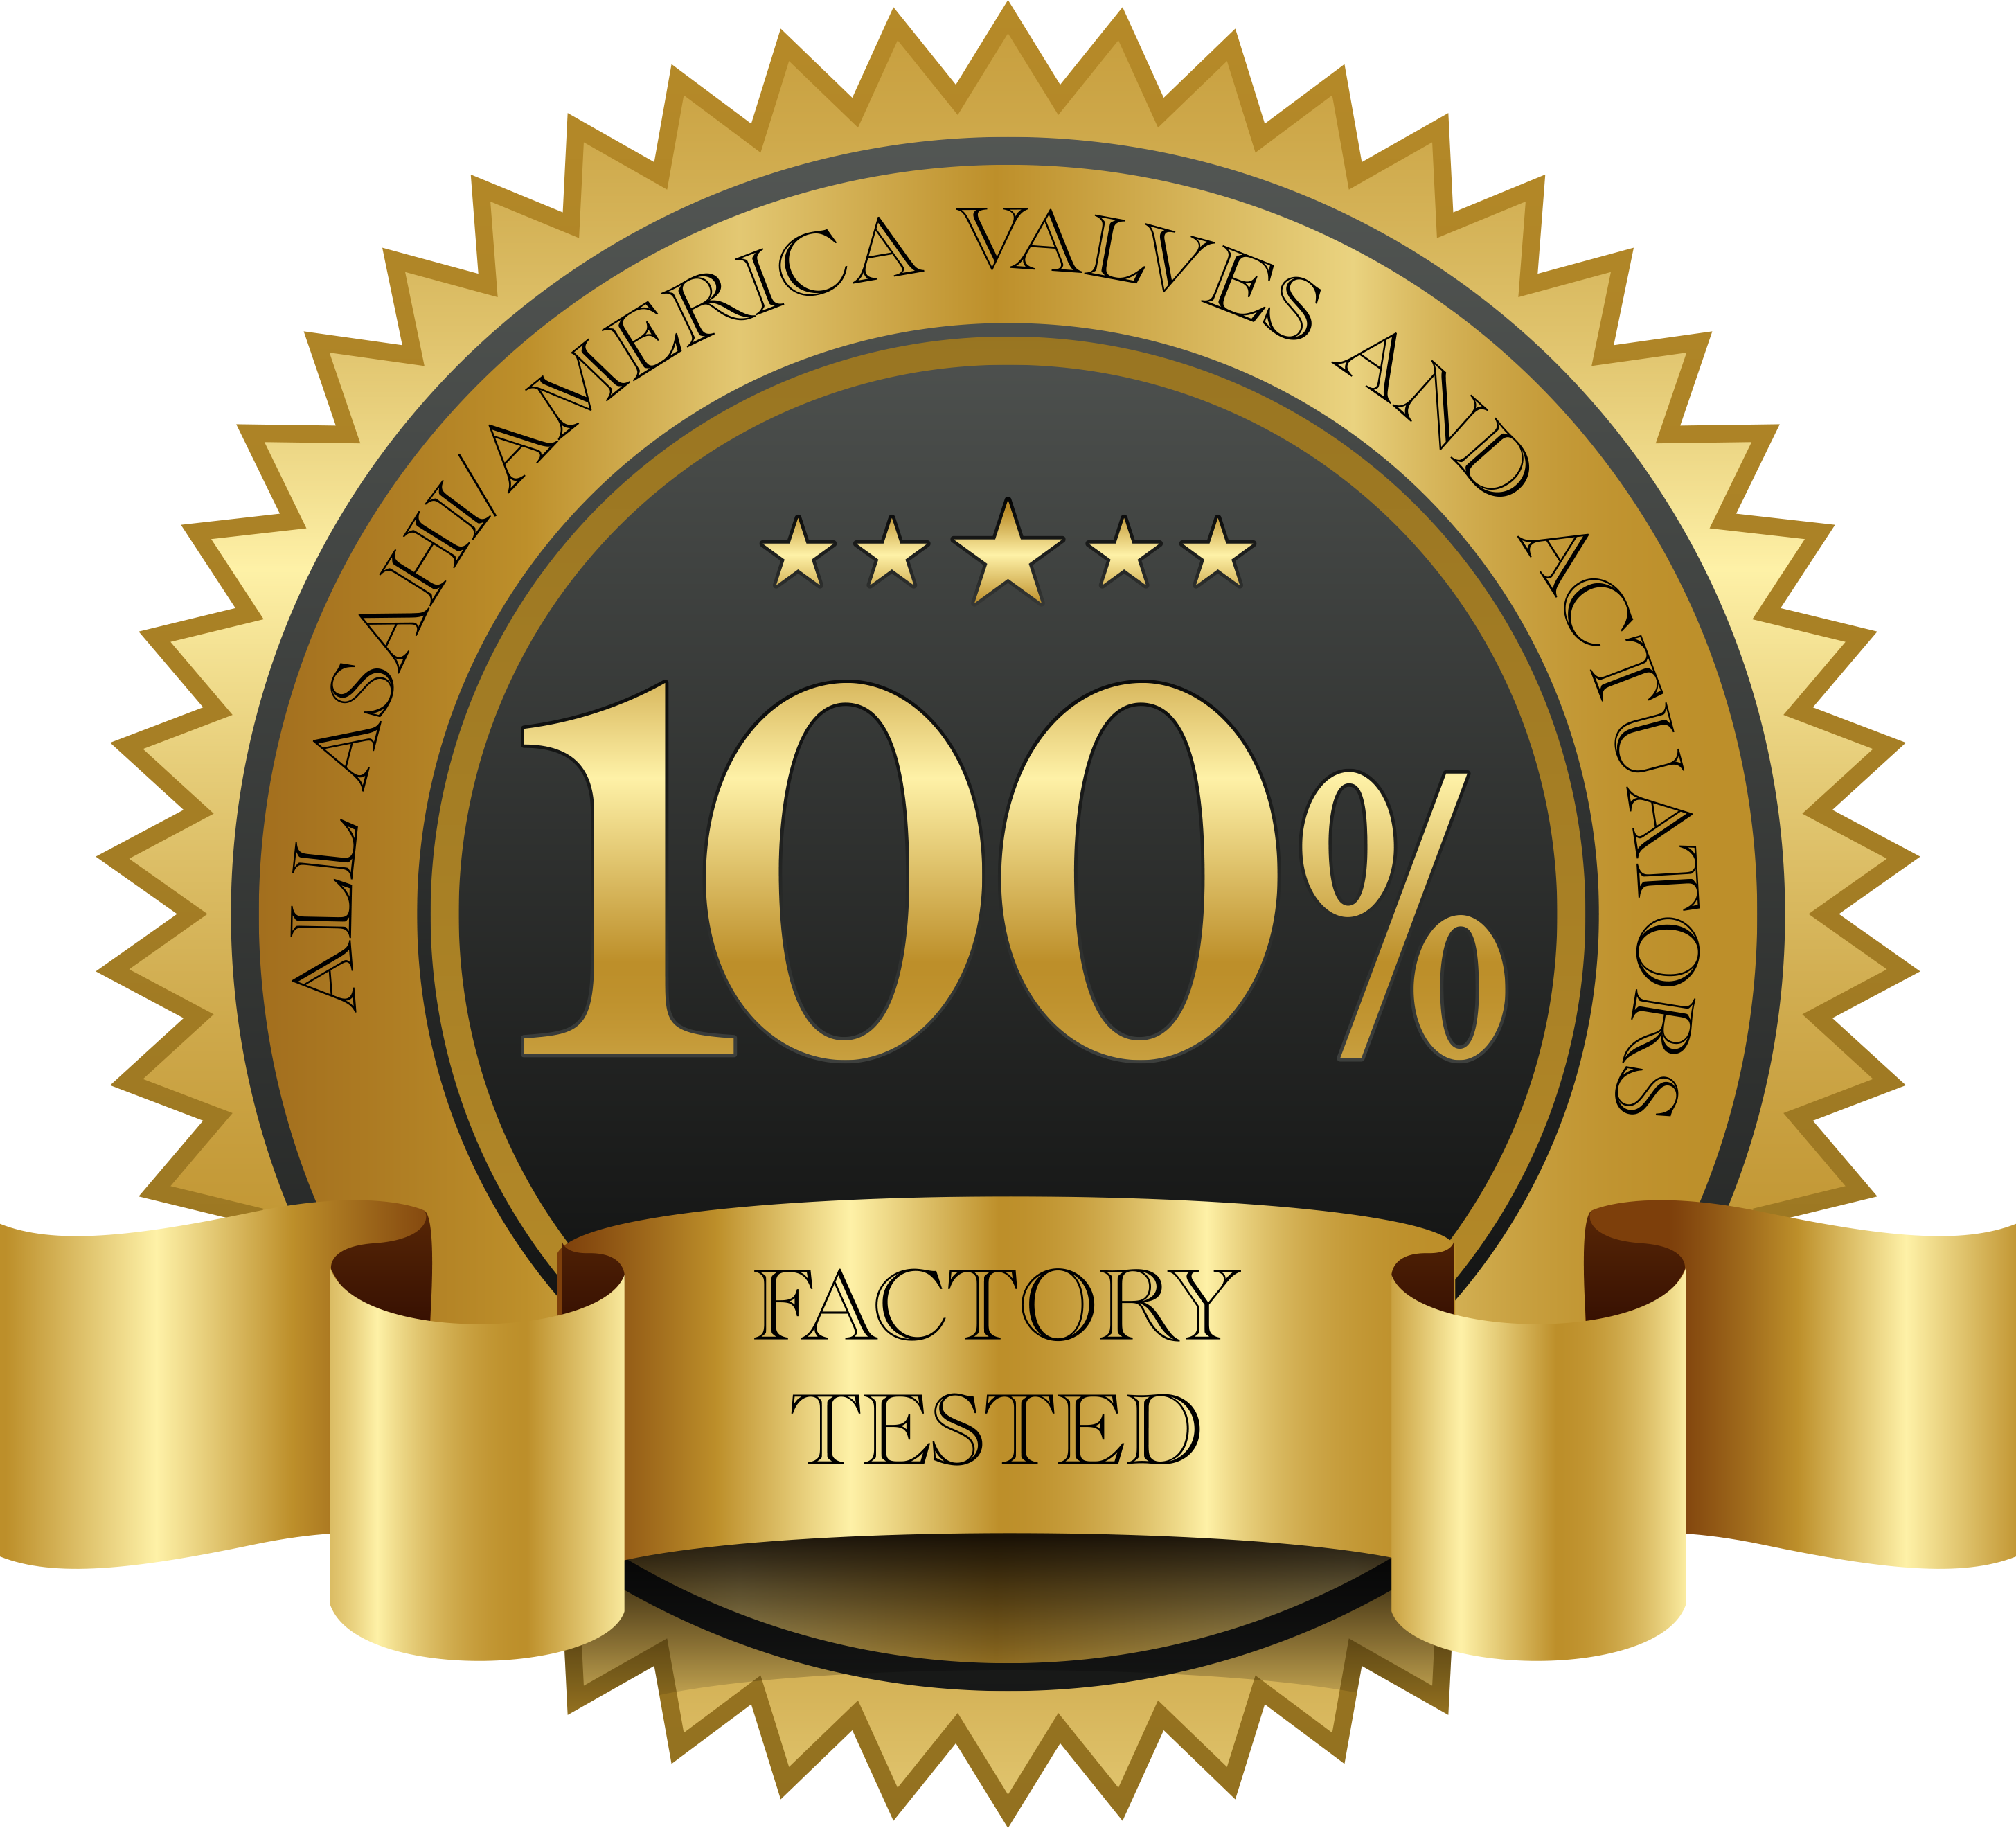 Factory tested logo